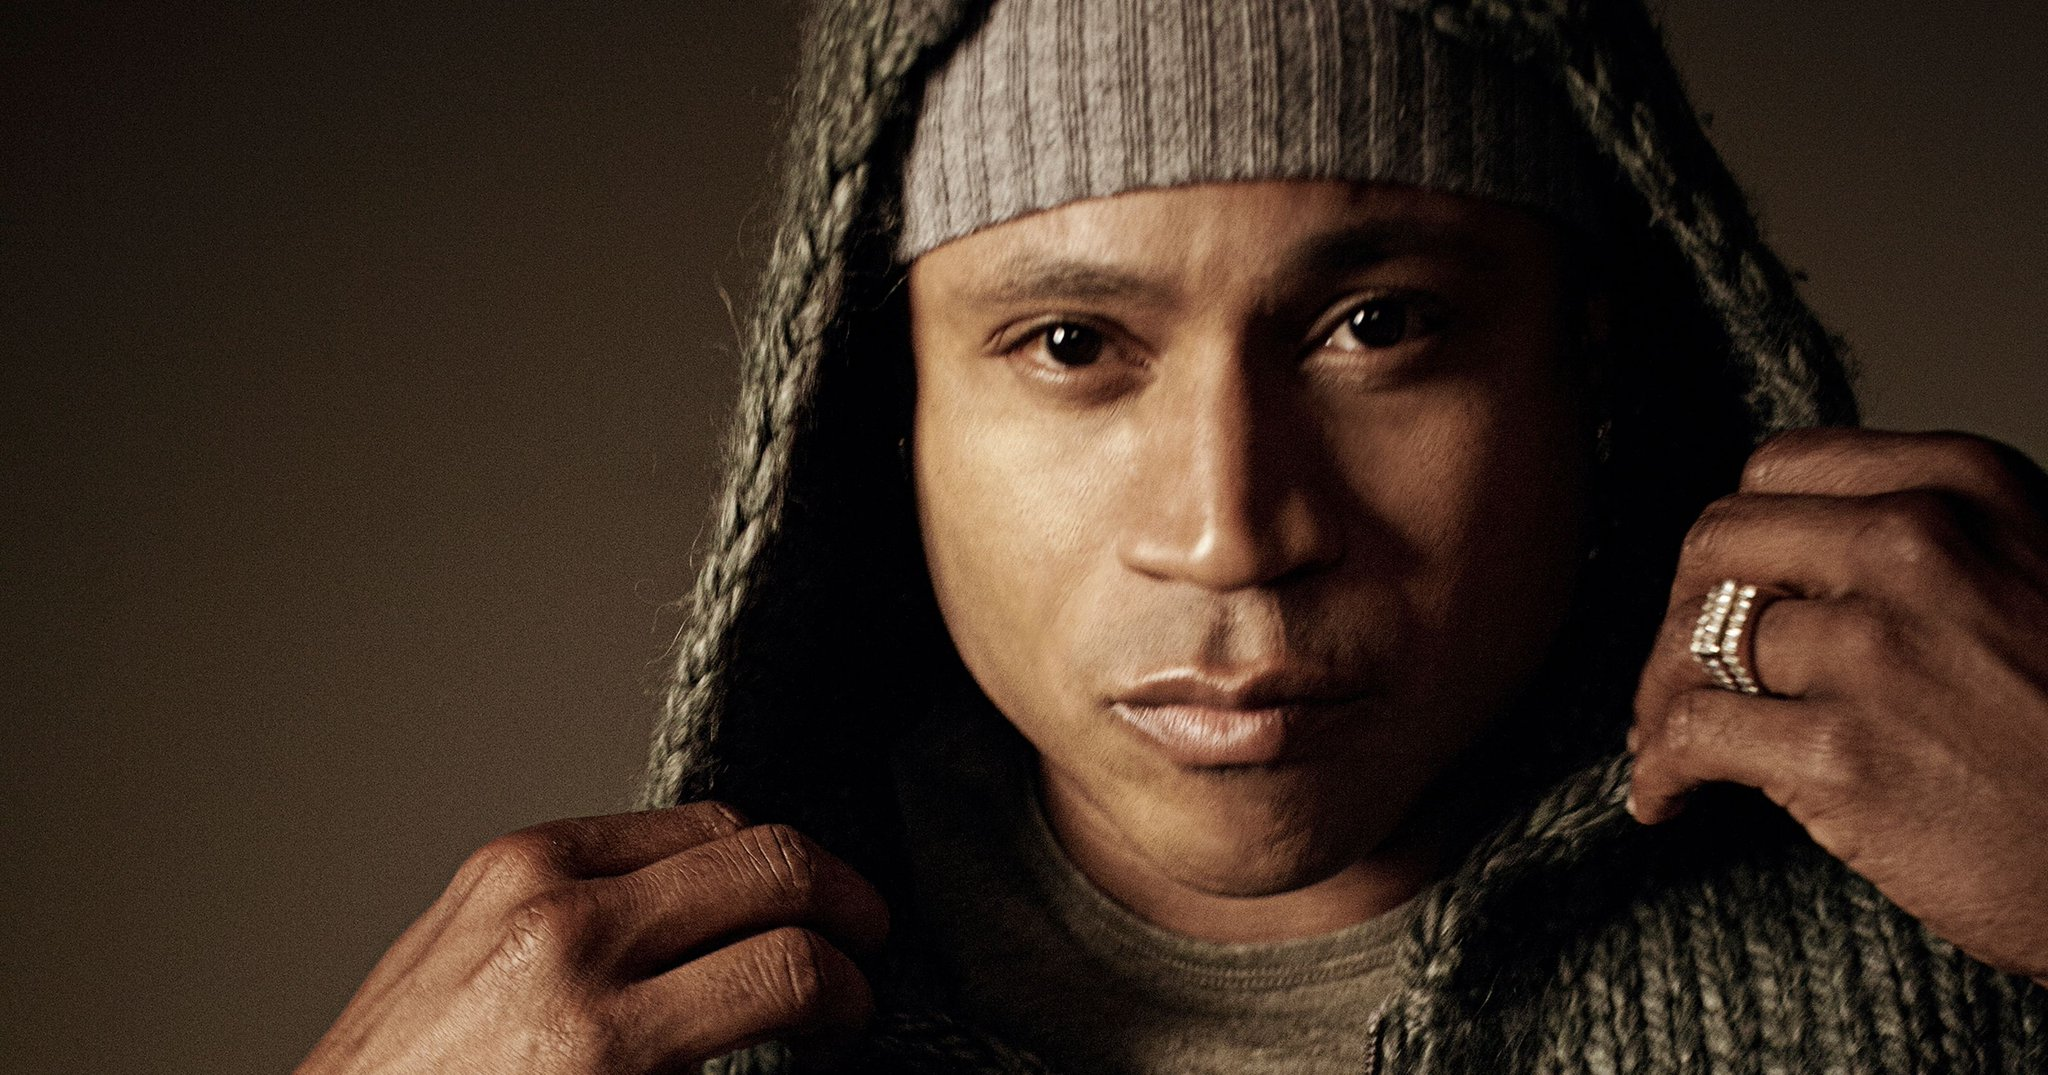 Happy Birthday LL Cool J! You\re still fine at 50!